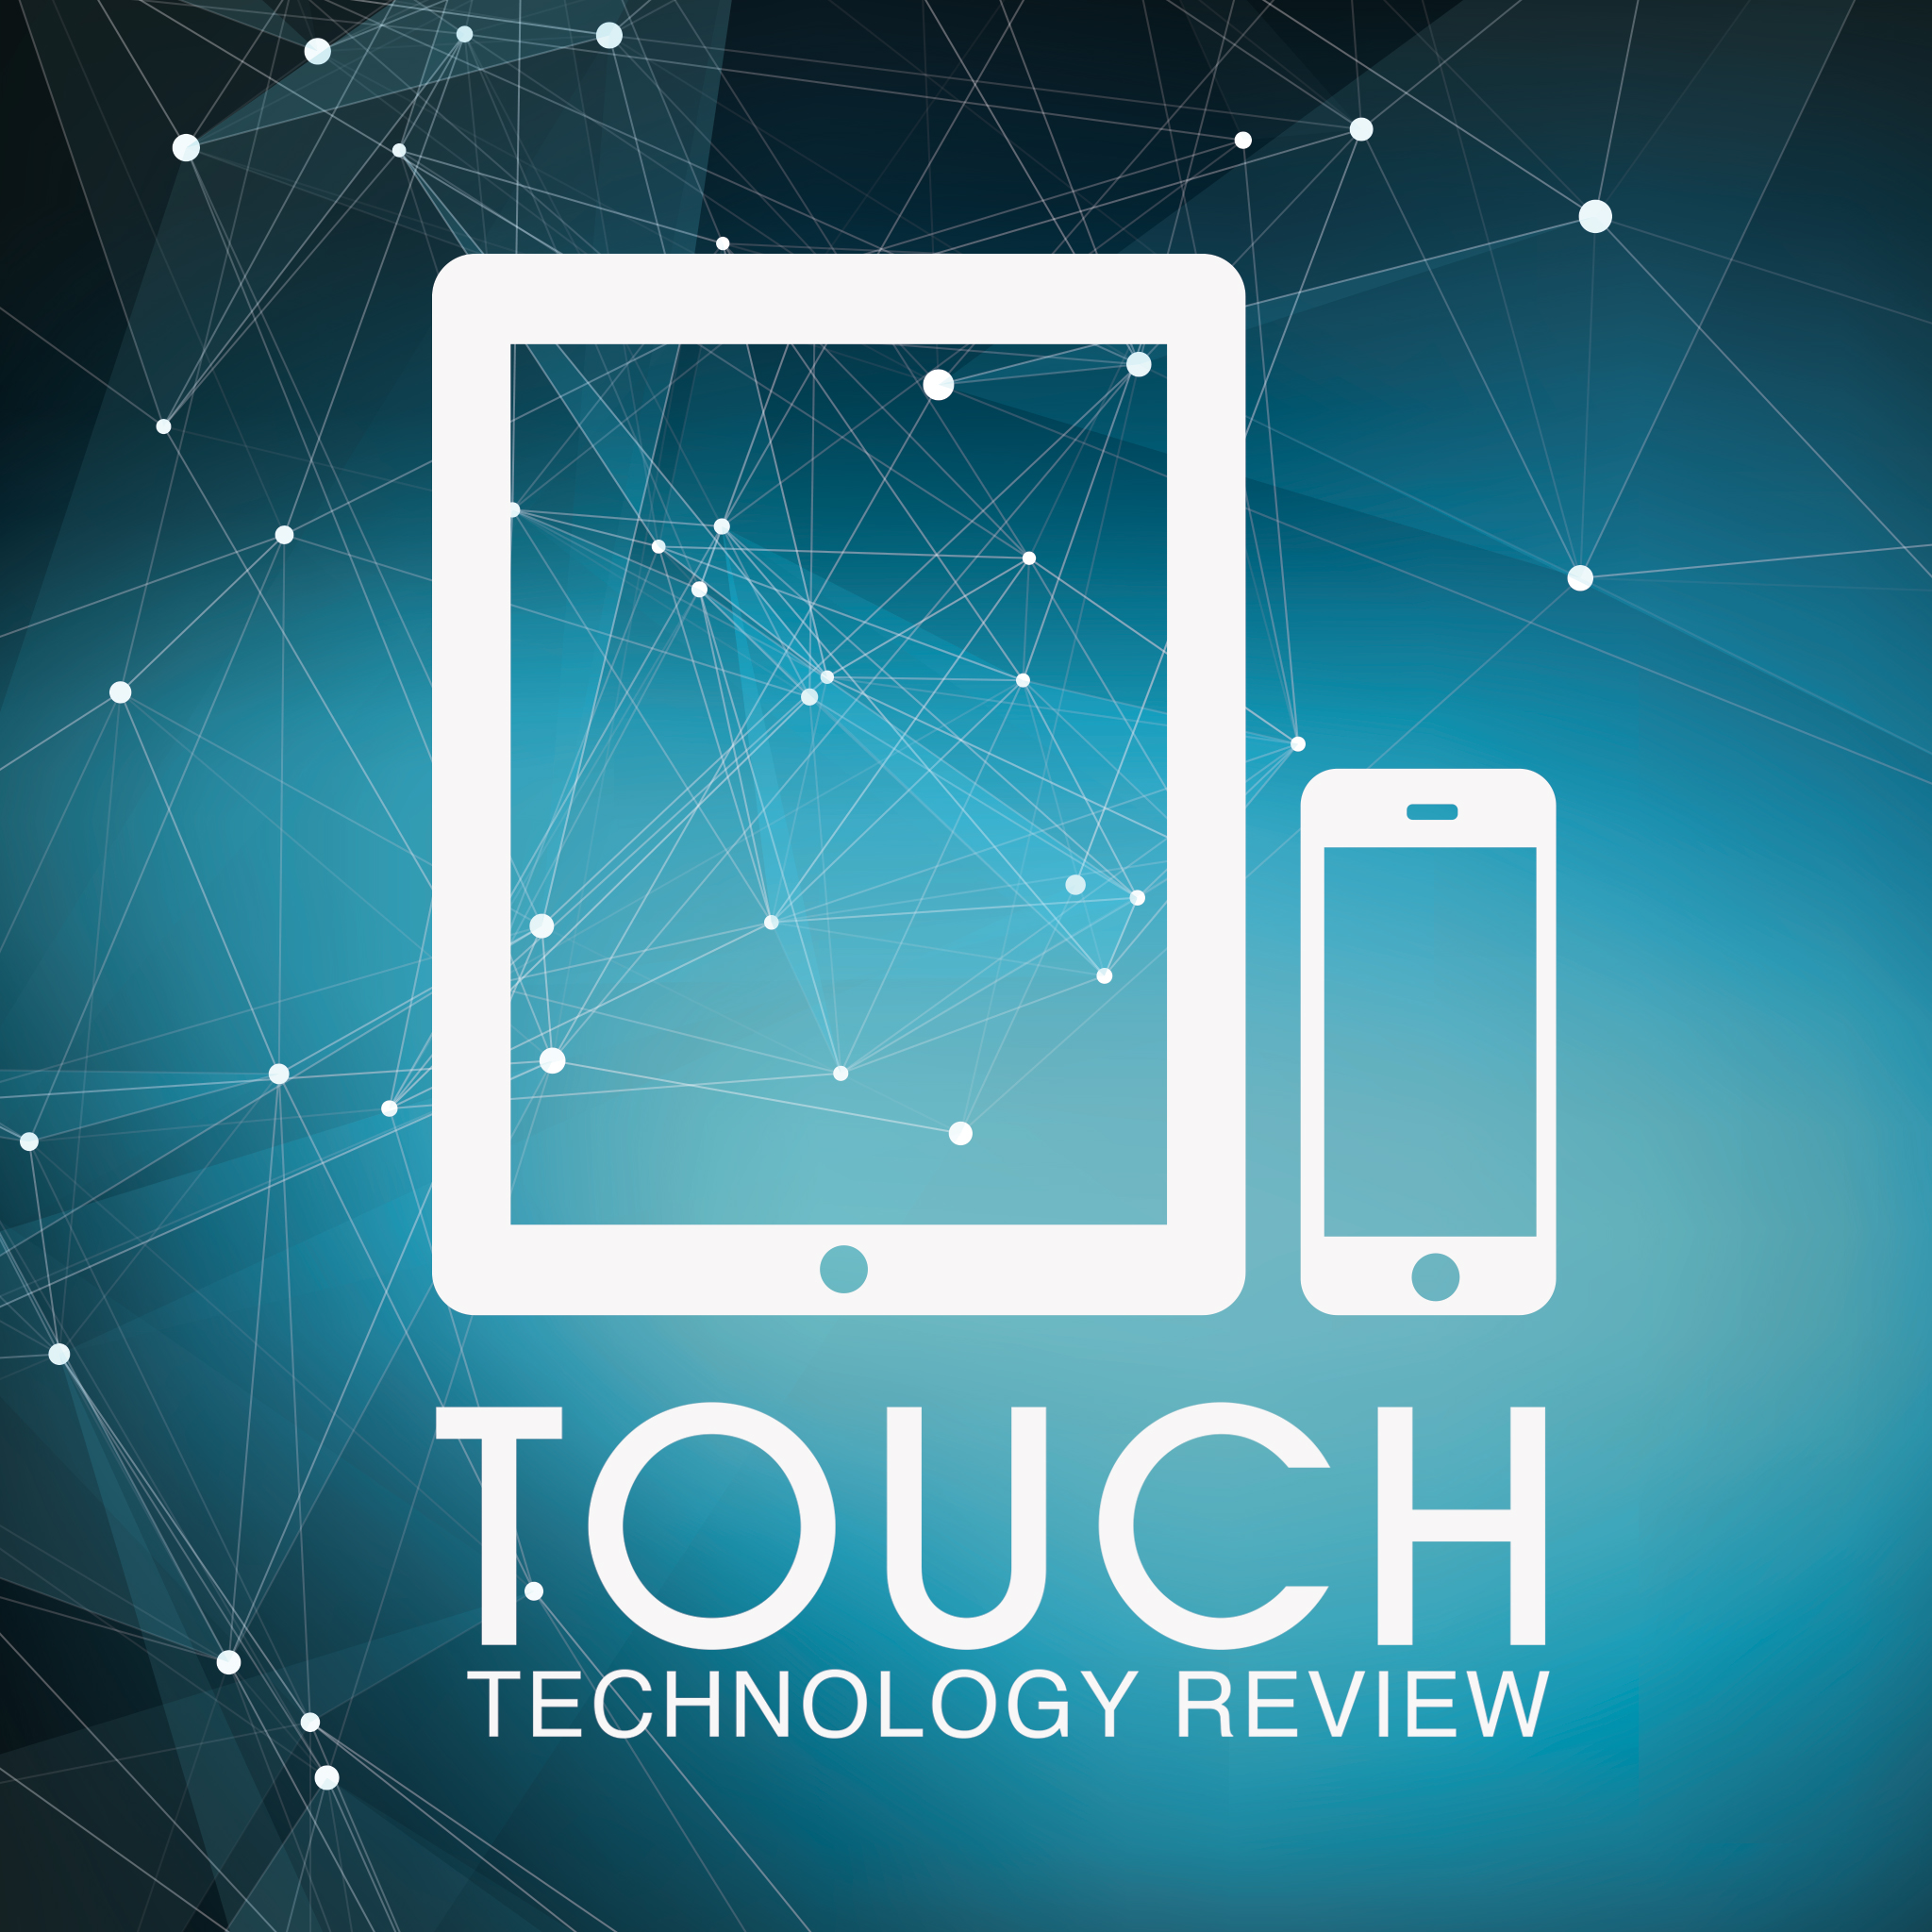 Touch Technology Review Podcast